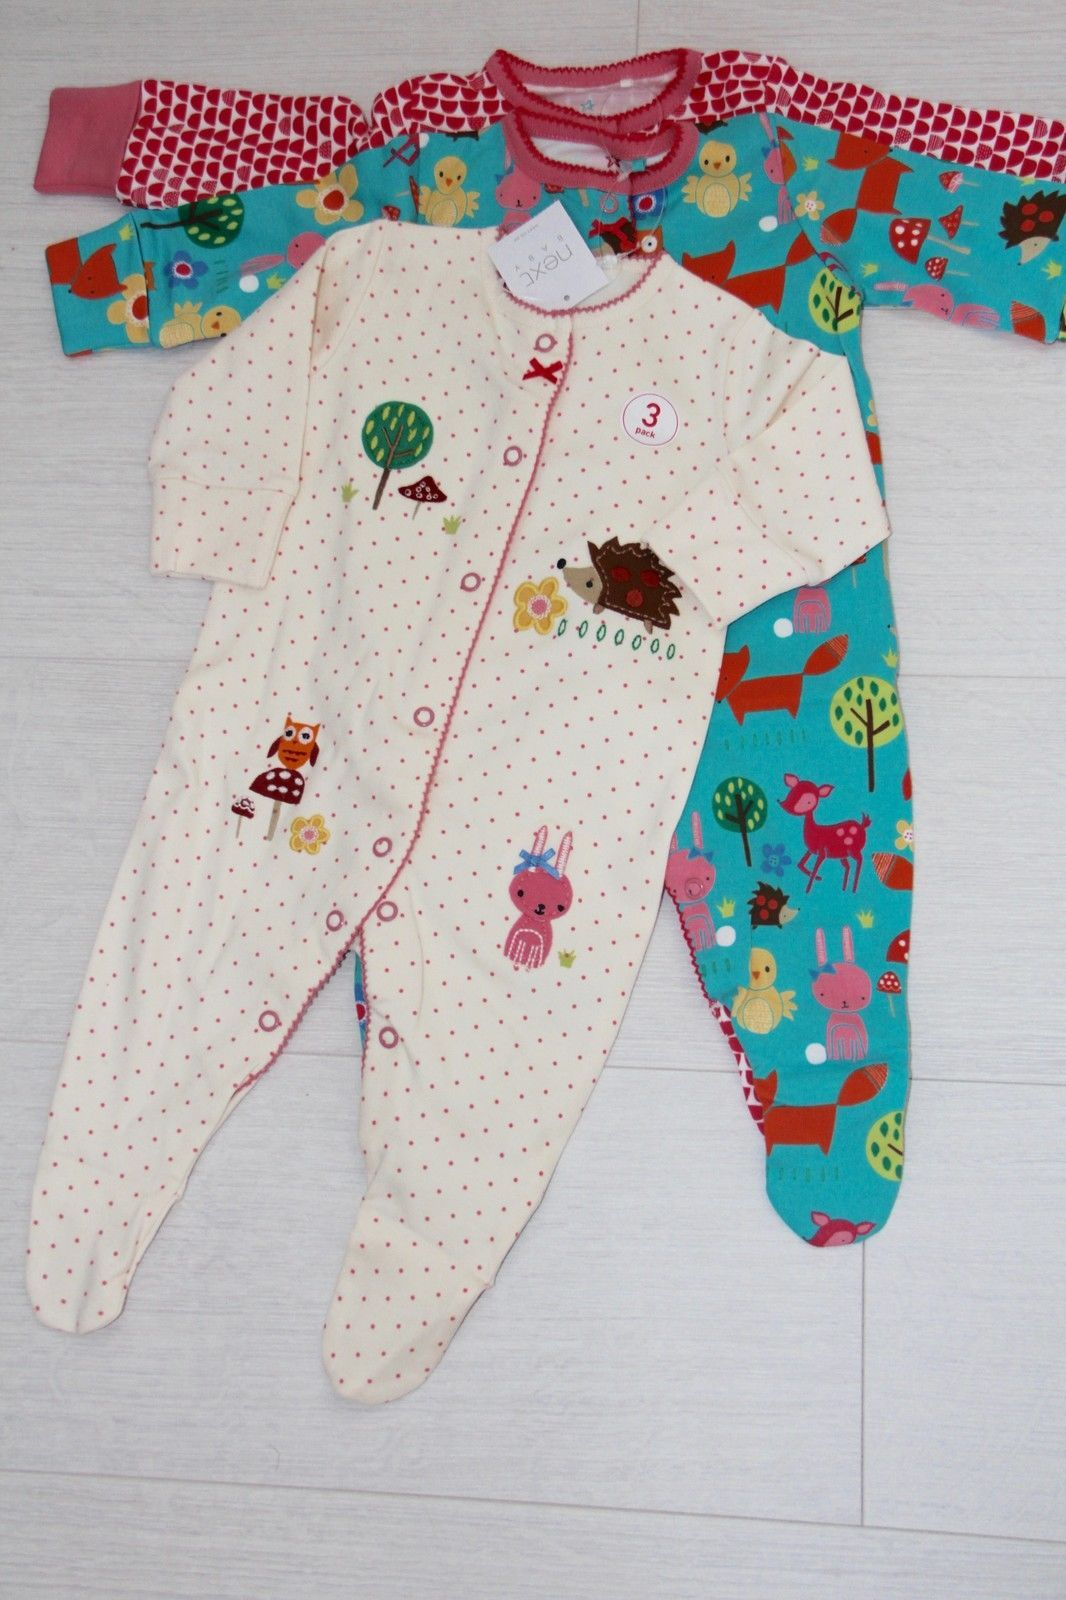 c5f284b35d57 BNWT NEXT 3x baby girls sleepsuits bodysuits with hedgehog appliqué ...